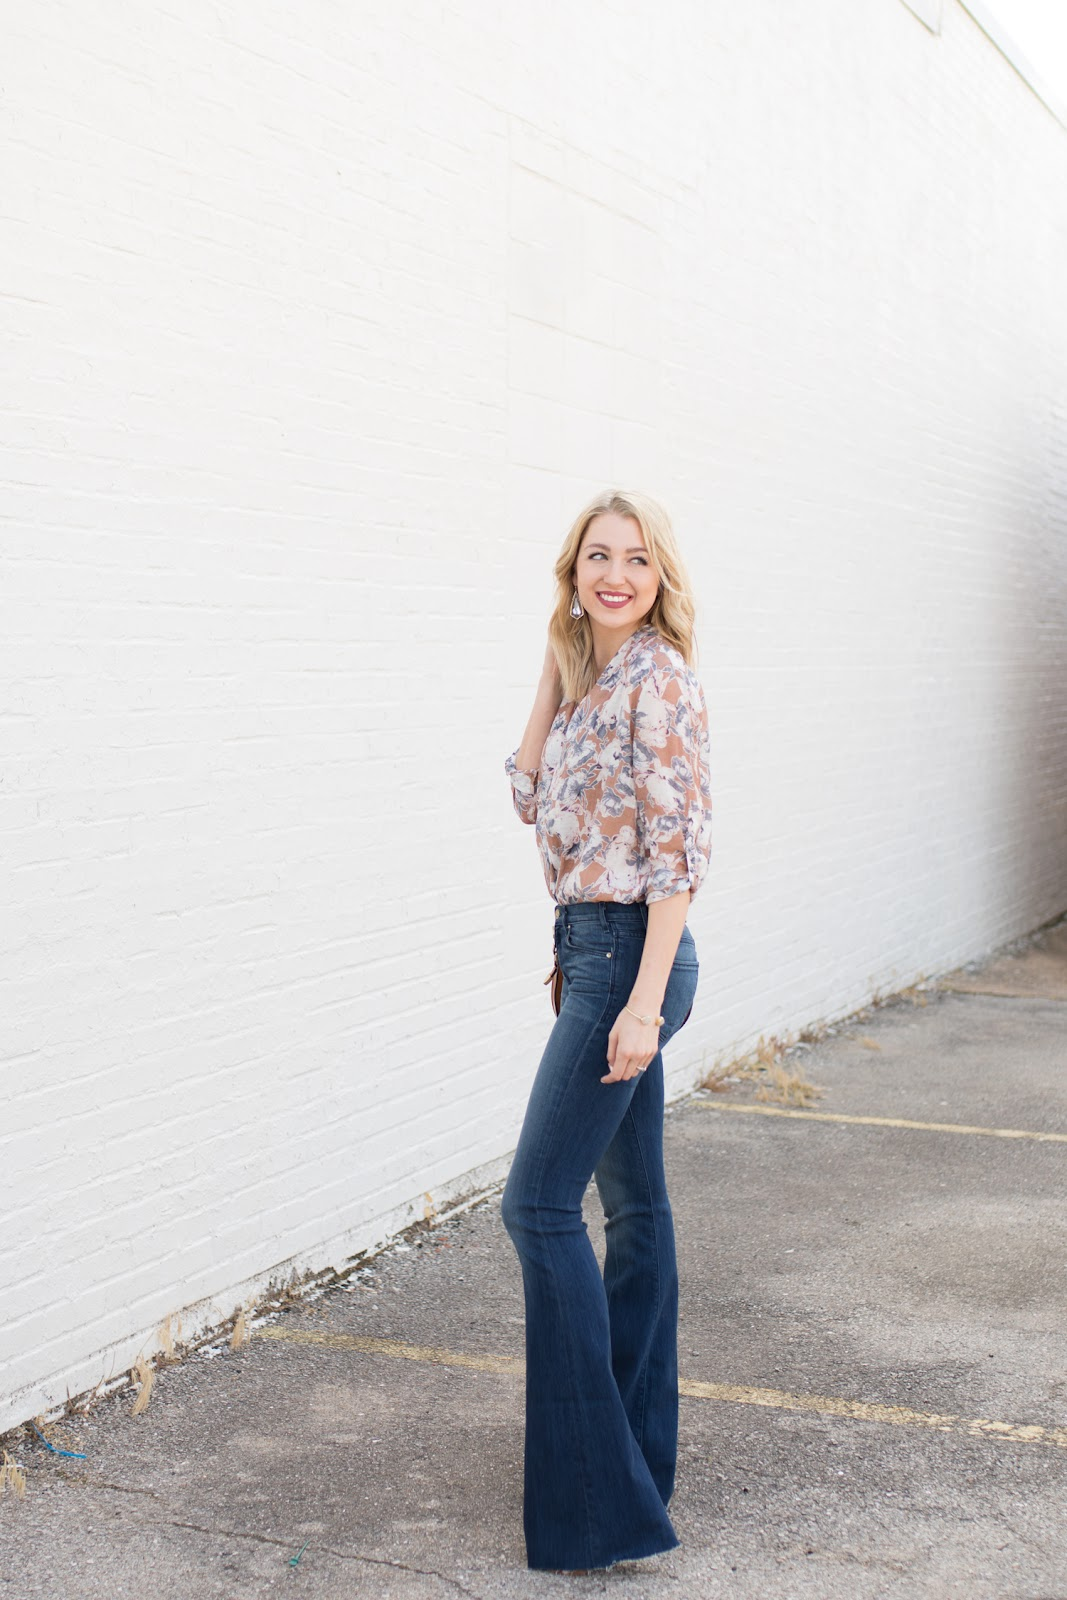 Flare jeans with a tucked in blouse